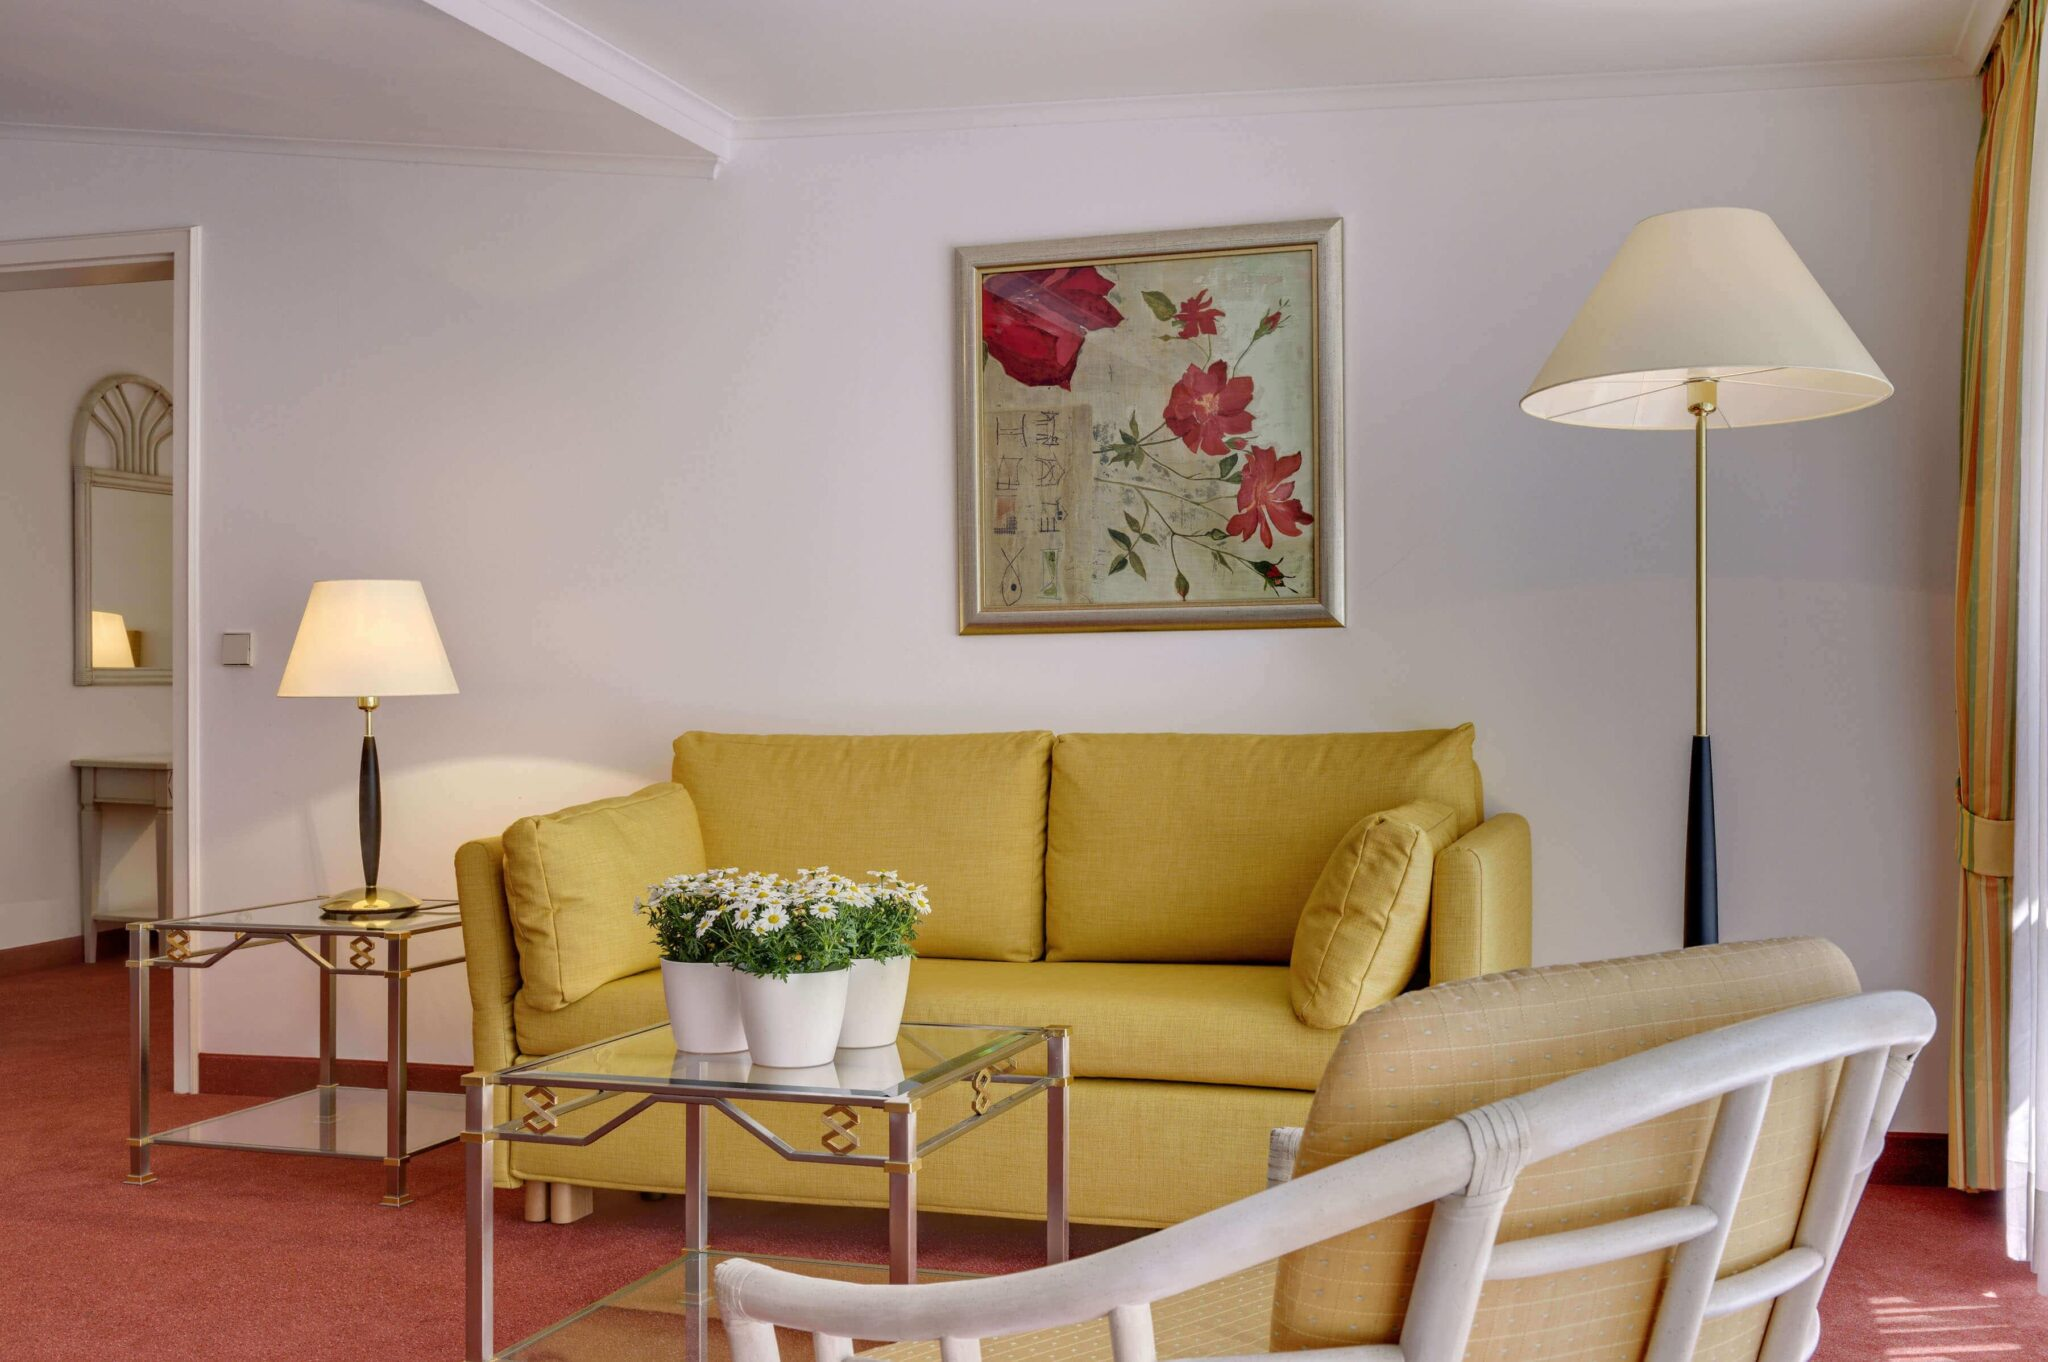 serviced apartments, Serviced Apartments – Long Stay, Hotel am Sophienpark, Hotel am Sophienpark